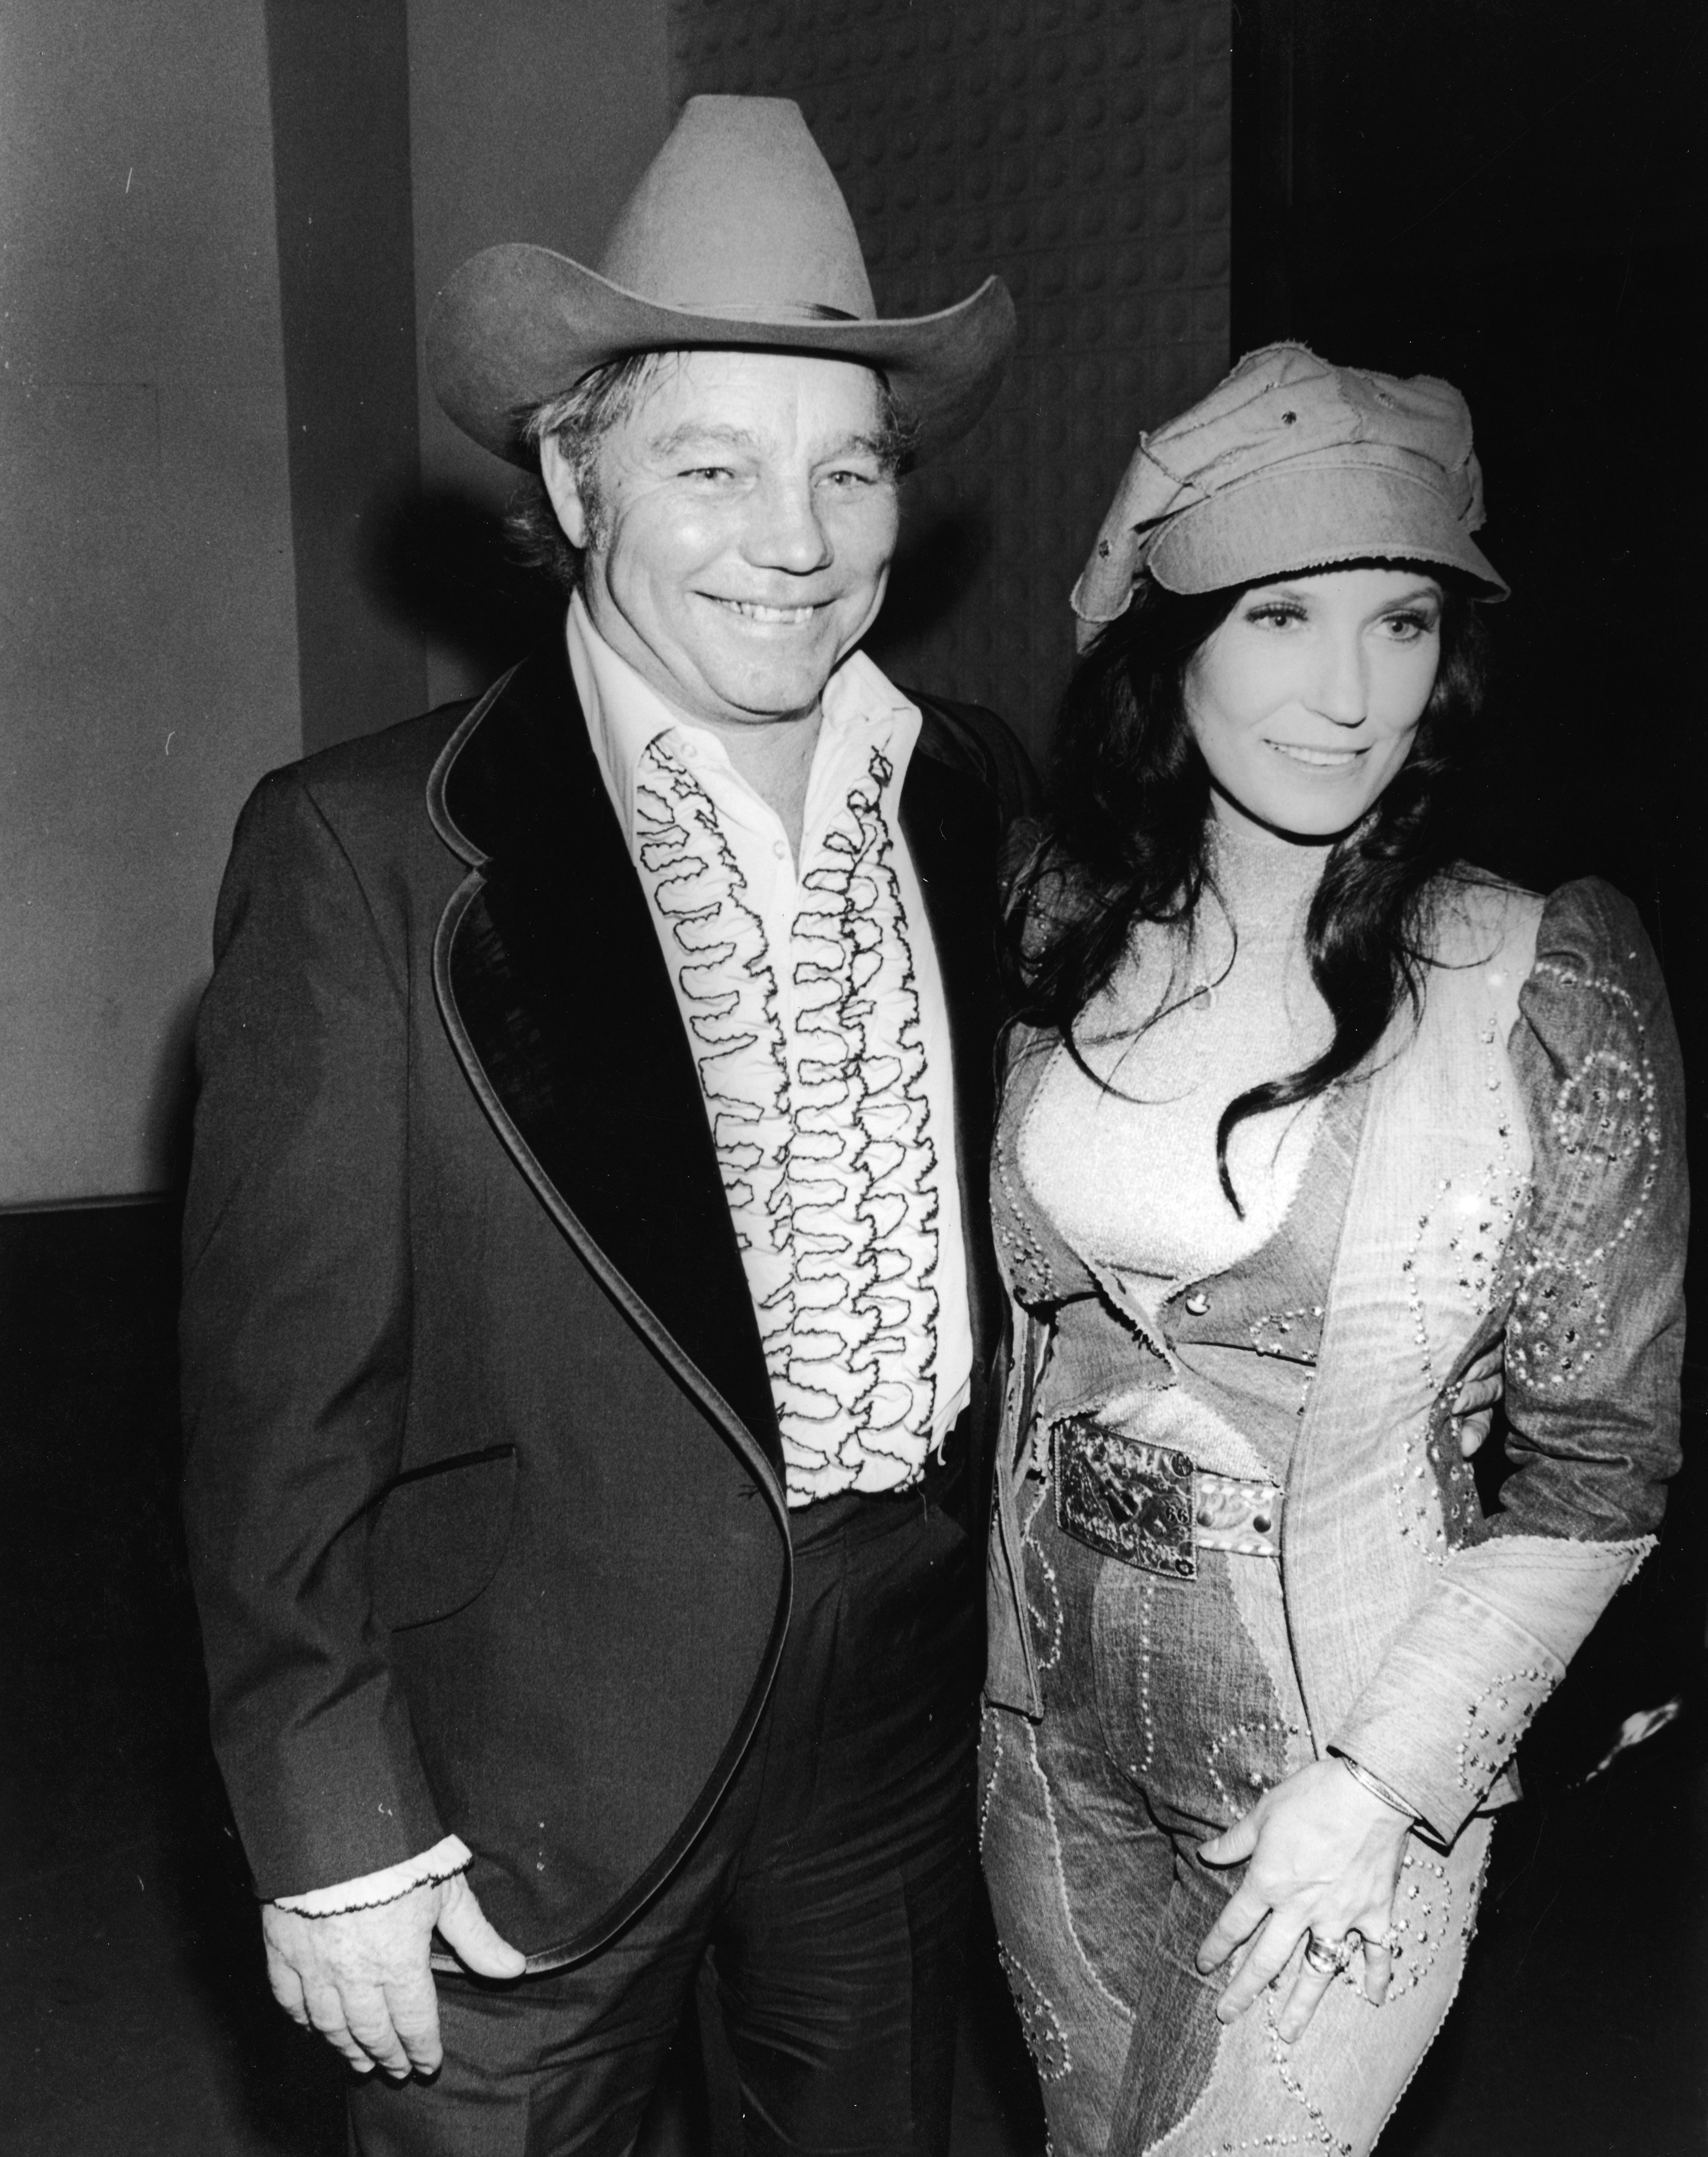 Loretta Lynn and her husband Oliver Lynn, Jr. (also known as Mooney) (1948 - 1996) at the Country & Western Music Awards, Hollywood, California | Source: Getty Images